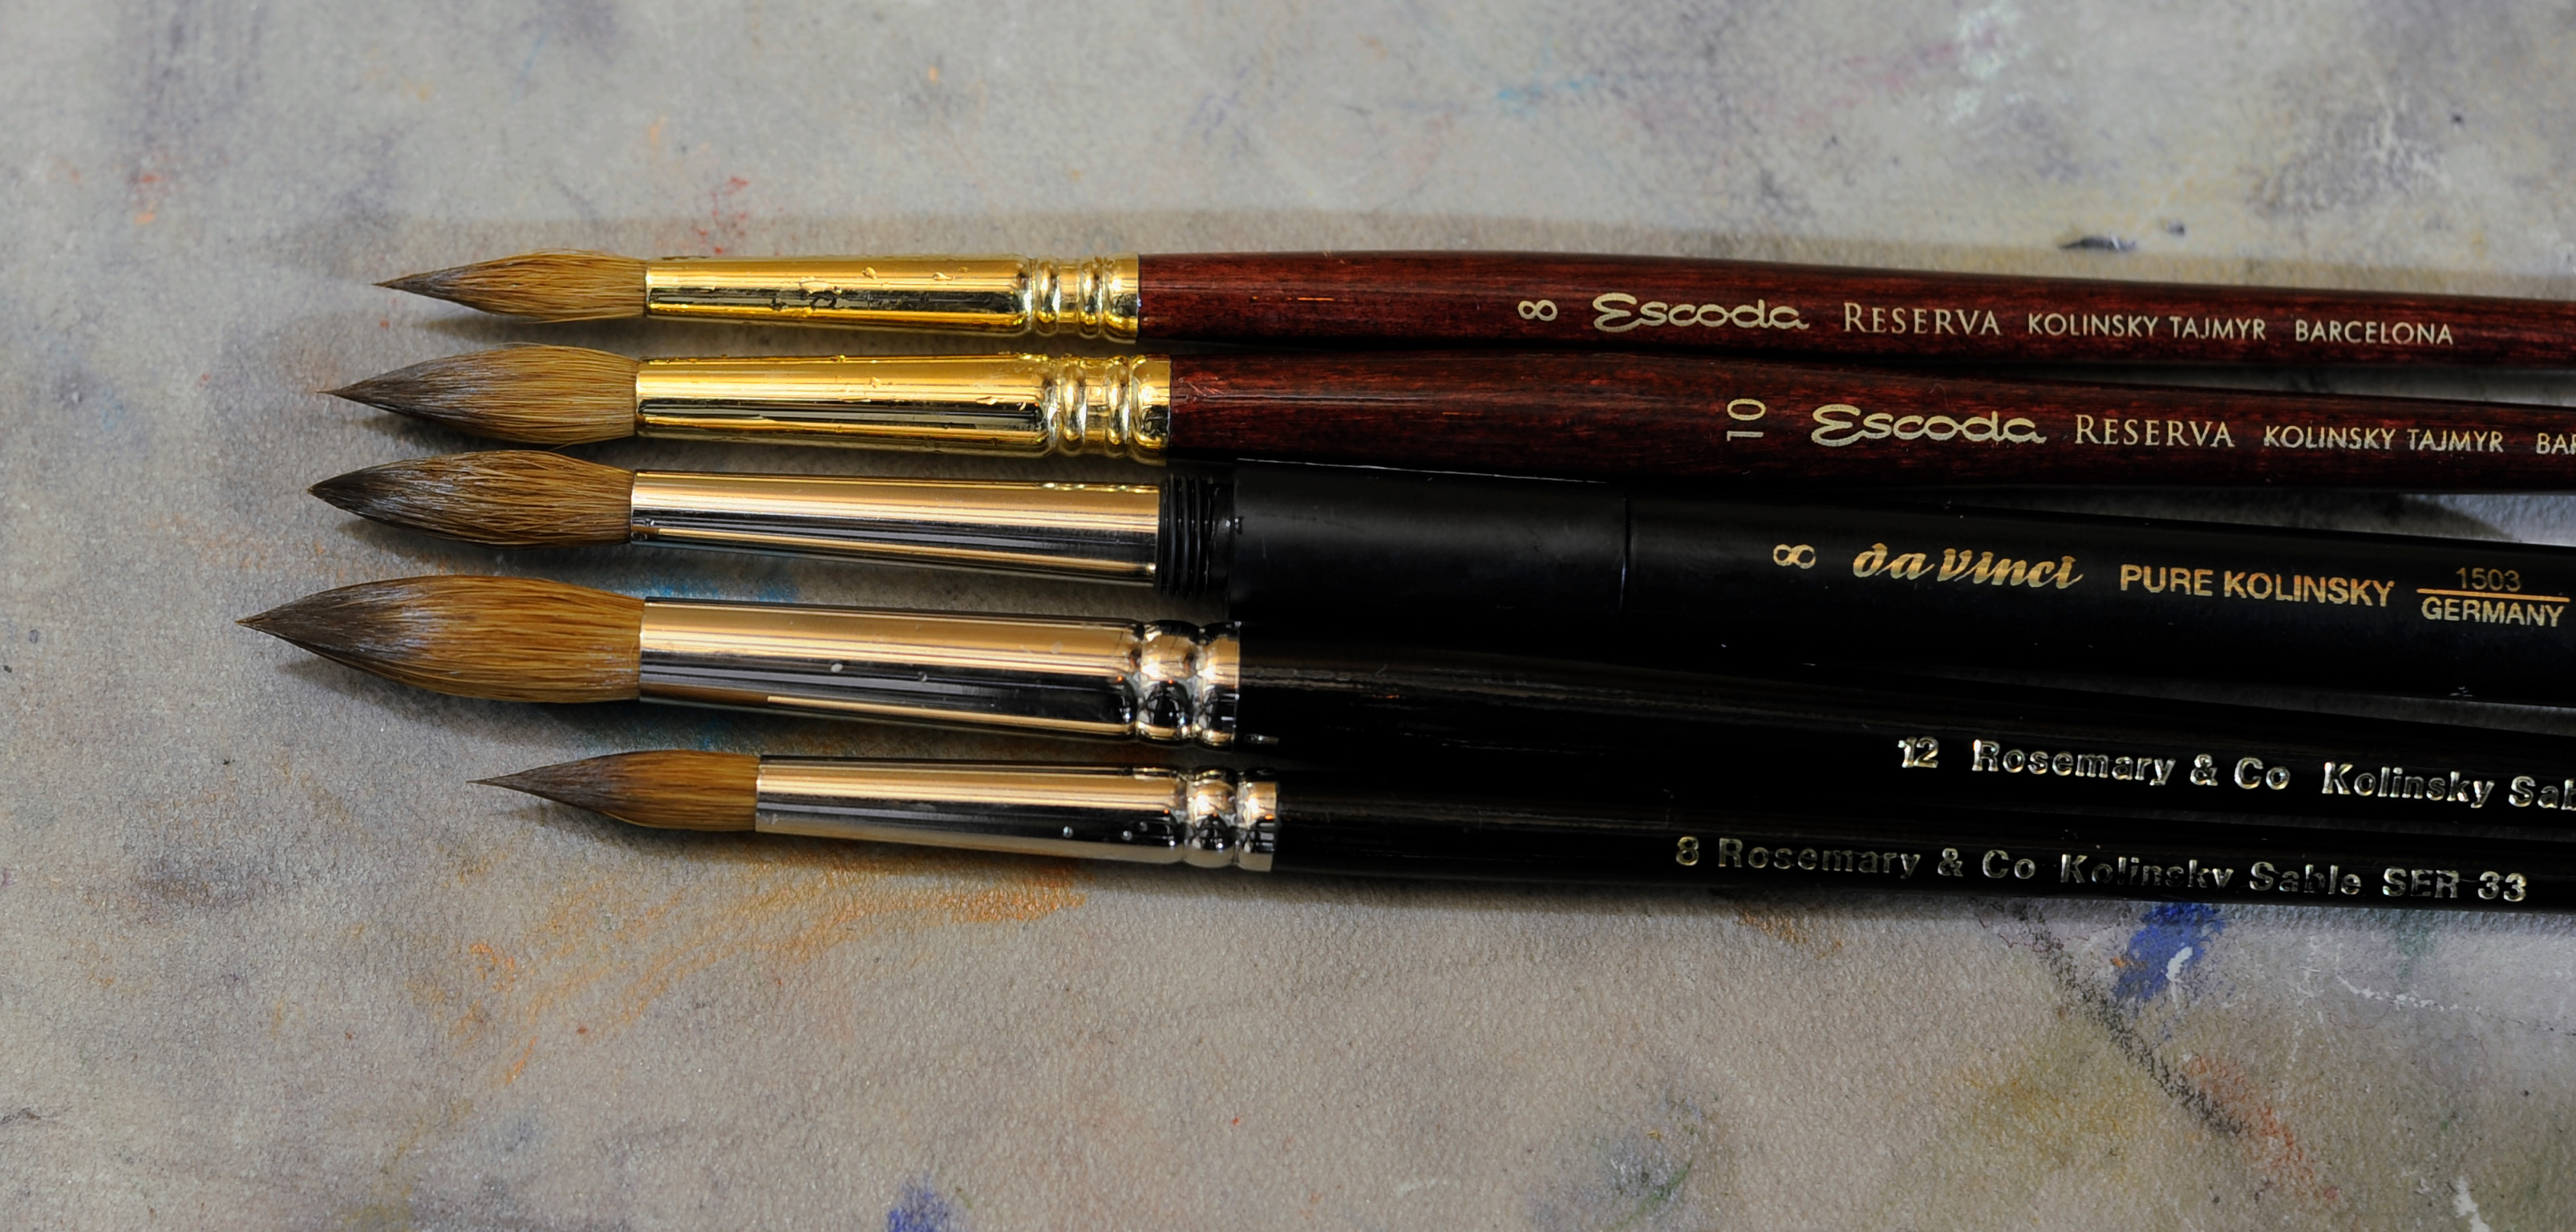 Wet brushes: Escoda Reserva size 8, Escoda Reserva size 10, Da Vinci 1503 size 8, Rosemary and Co series 33 size 12, Rosemary and Co series 33 size 8